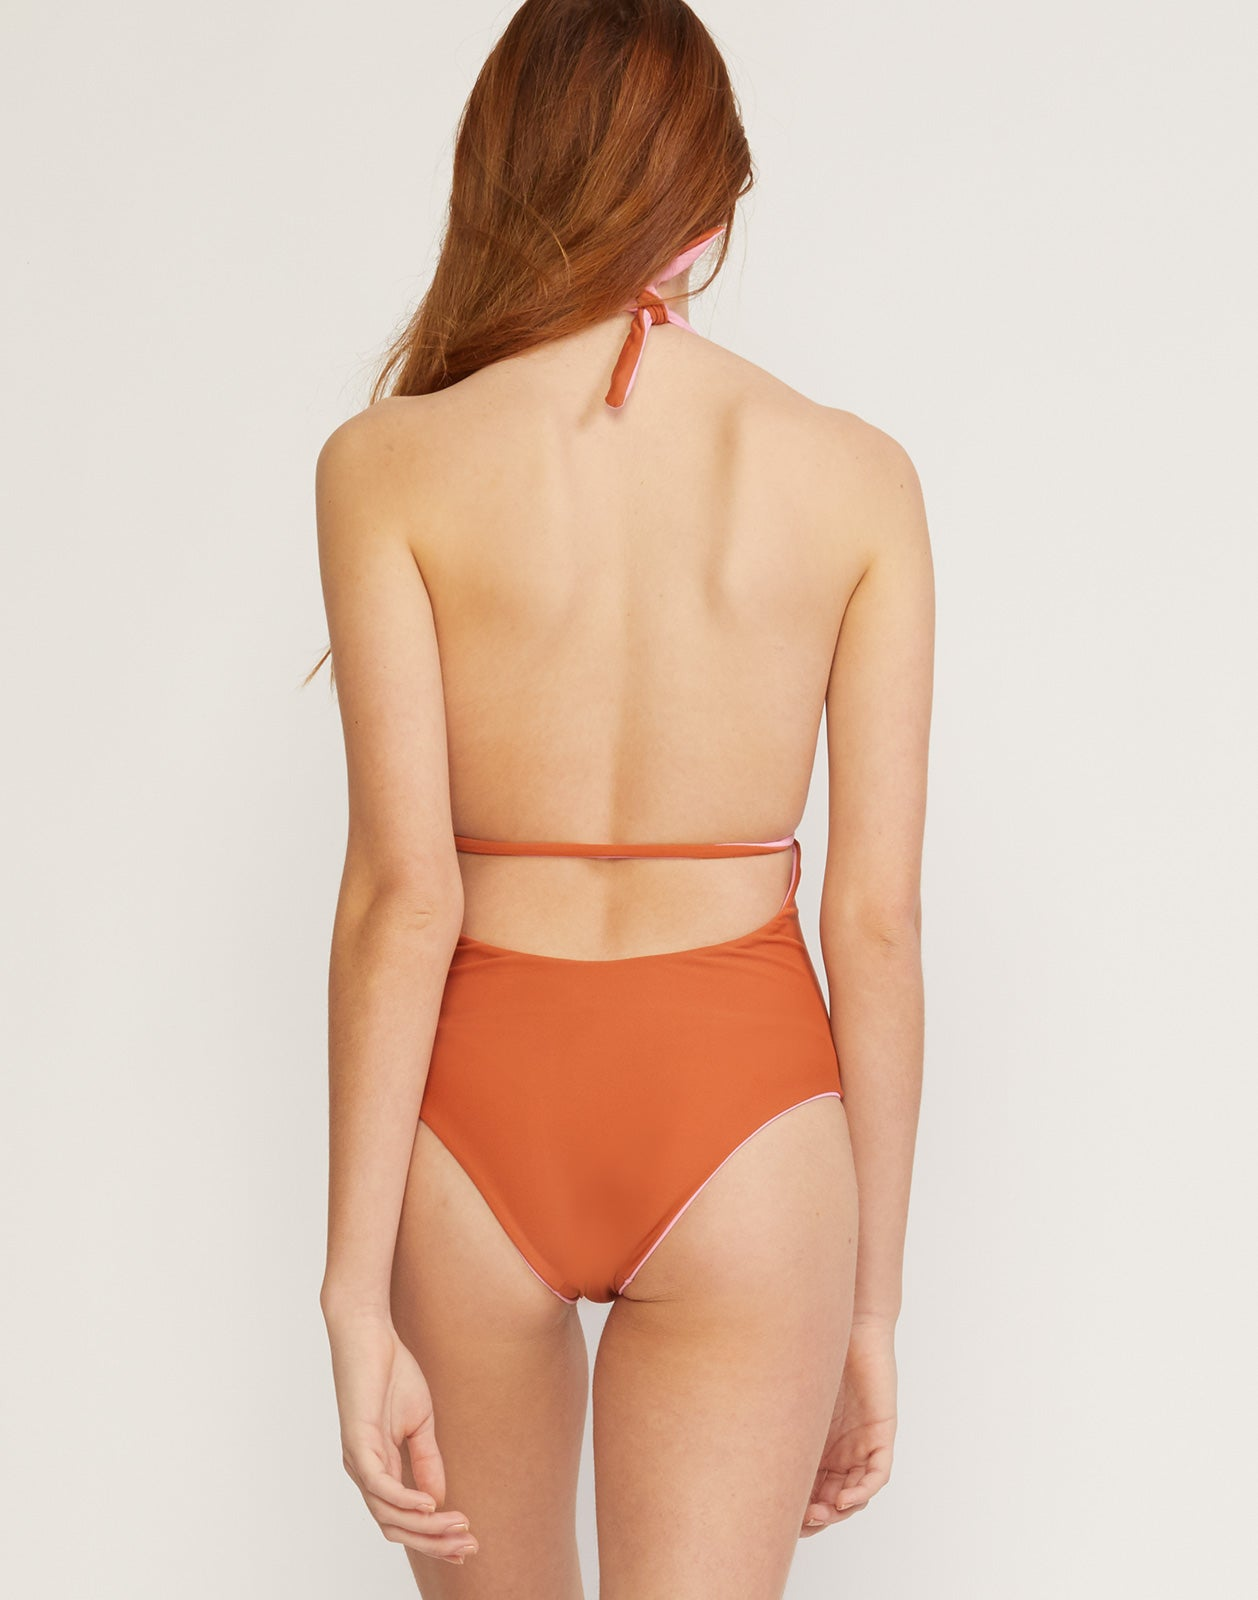 Back view of the Heartbreakers reversible one piece swimsuit in copper and blush.